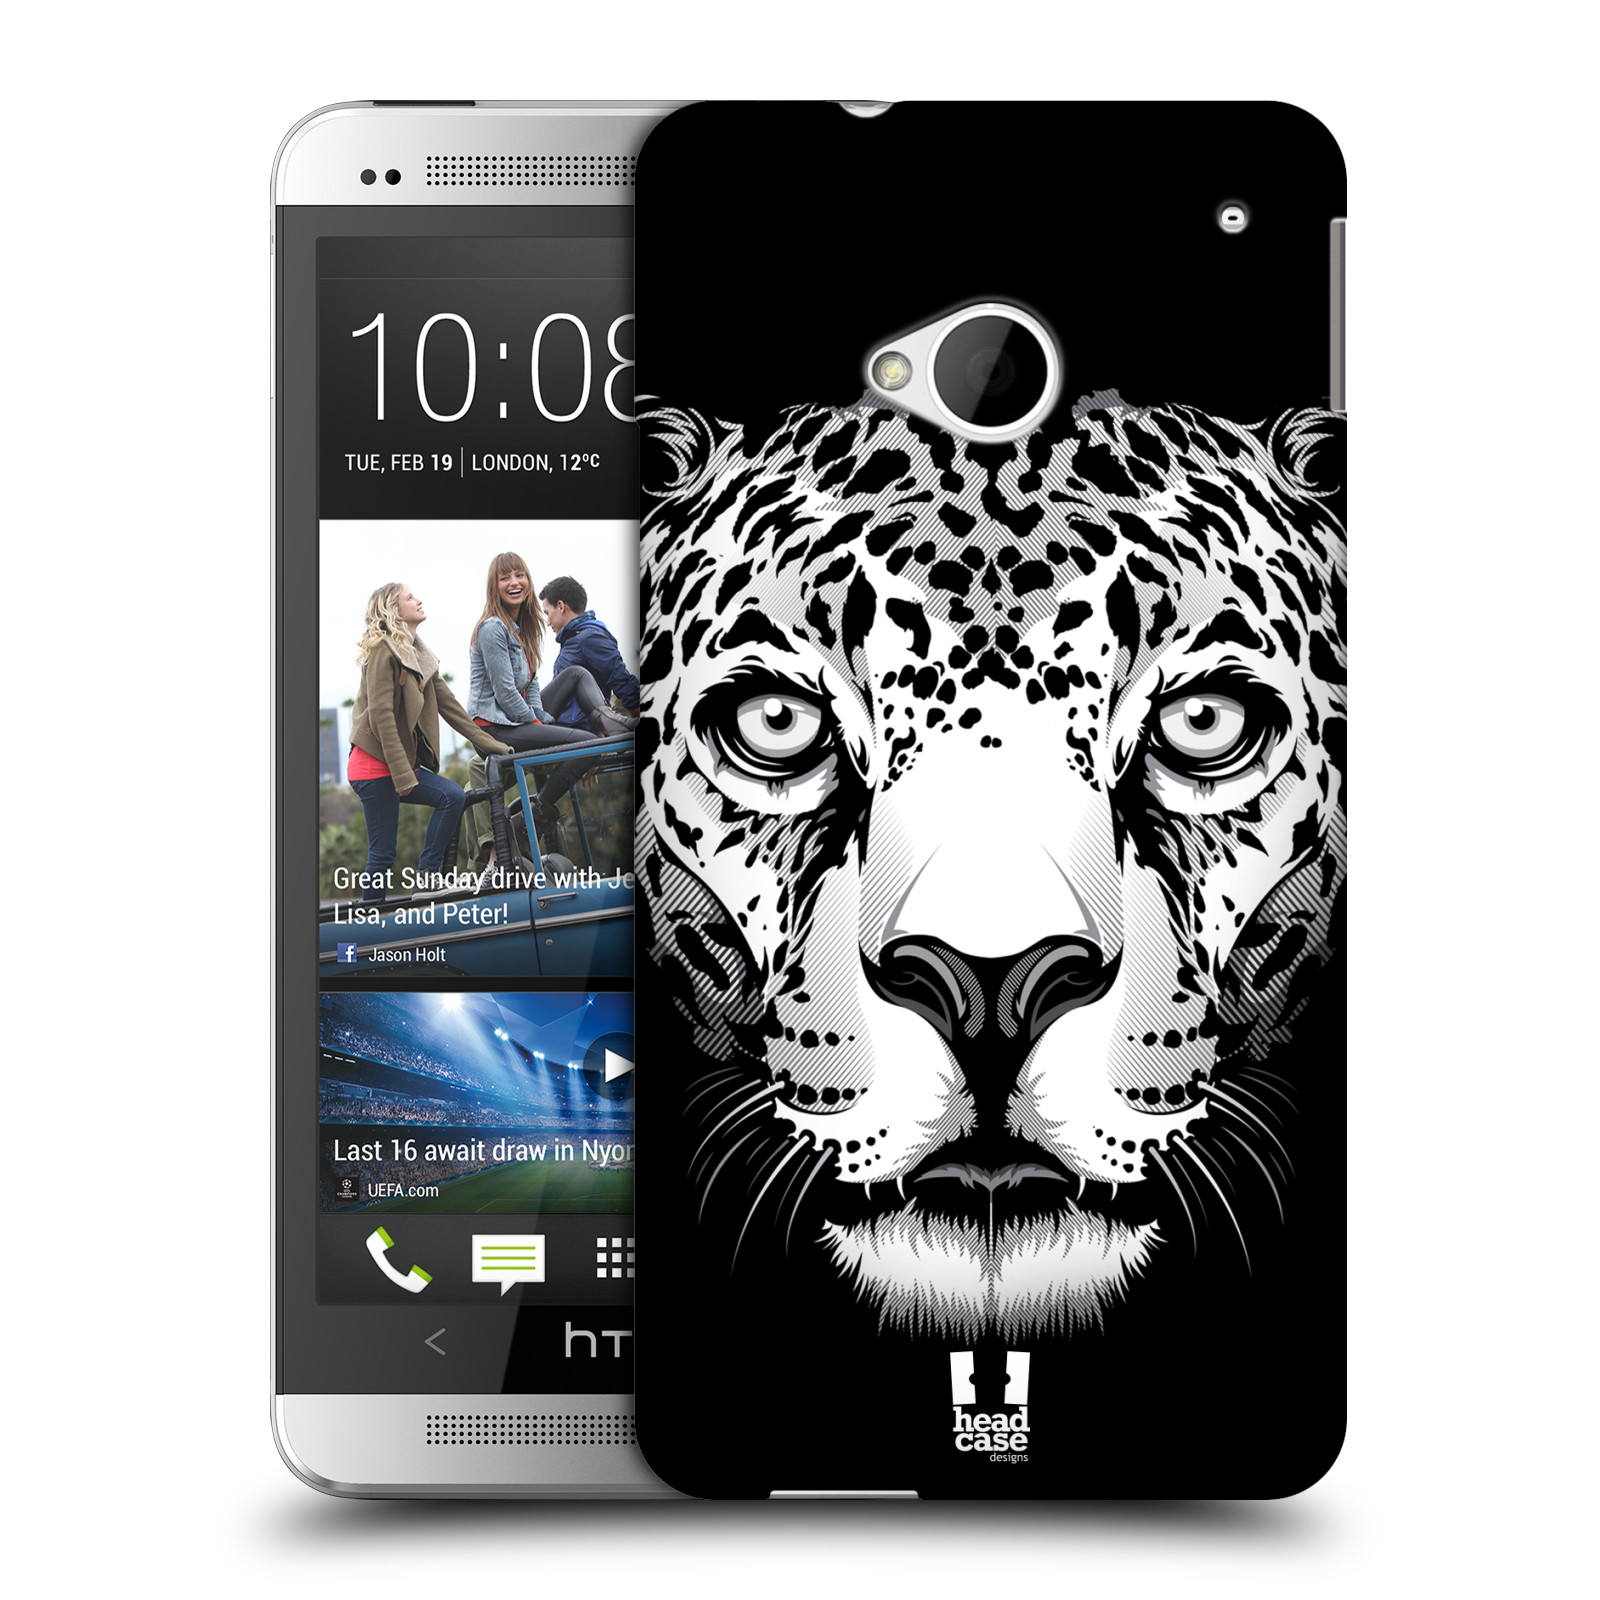 HEAD CASE BIG FACE ILLUSTRATED HARD BACK CASE COVER FOR HTC ONE